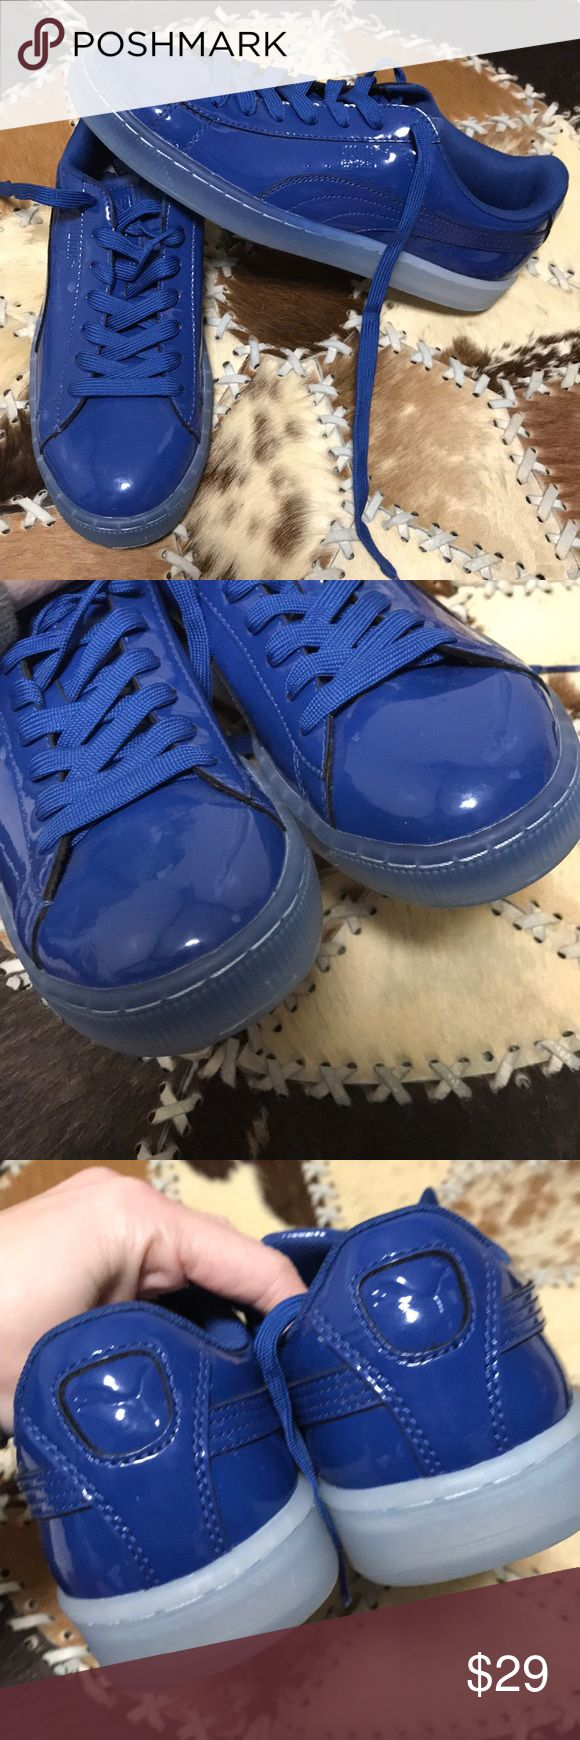 Puma blue sneakers NWOT Pretty shiny blue! Never worn. Has a couple of teensy vague spots I show in pic. Soles have a cool ombré effect. No box. Snag a deal! Bundling is fun; check out my other items & save!  Home is smoke free/ cat friendly. No price talk in comments. No trades or holds. Puma Shoes Sneakers